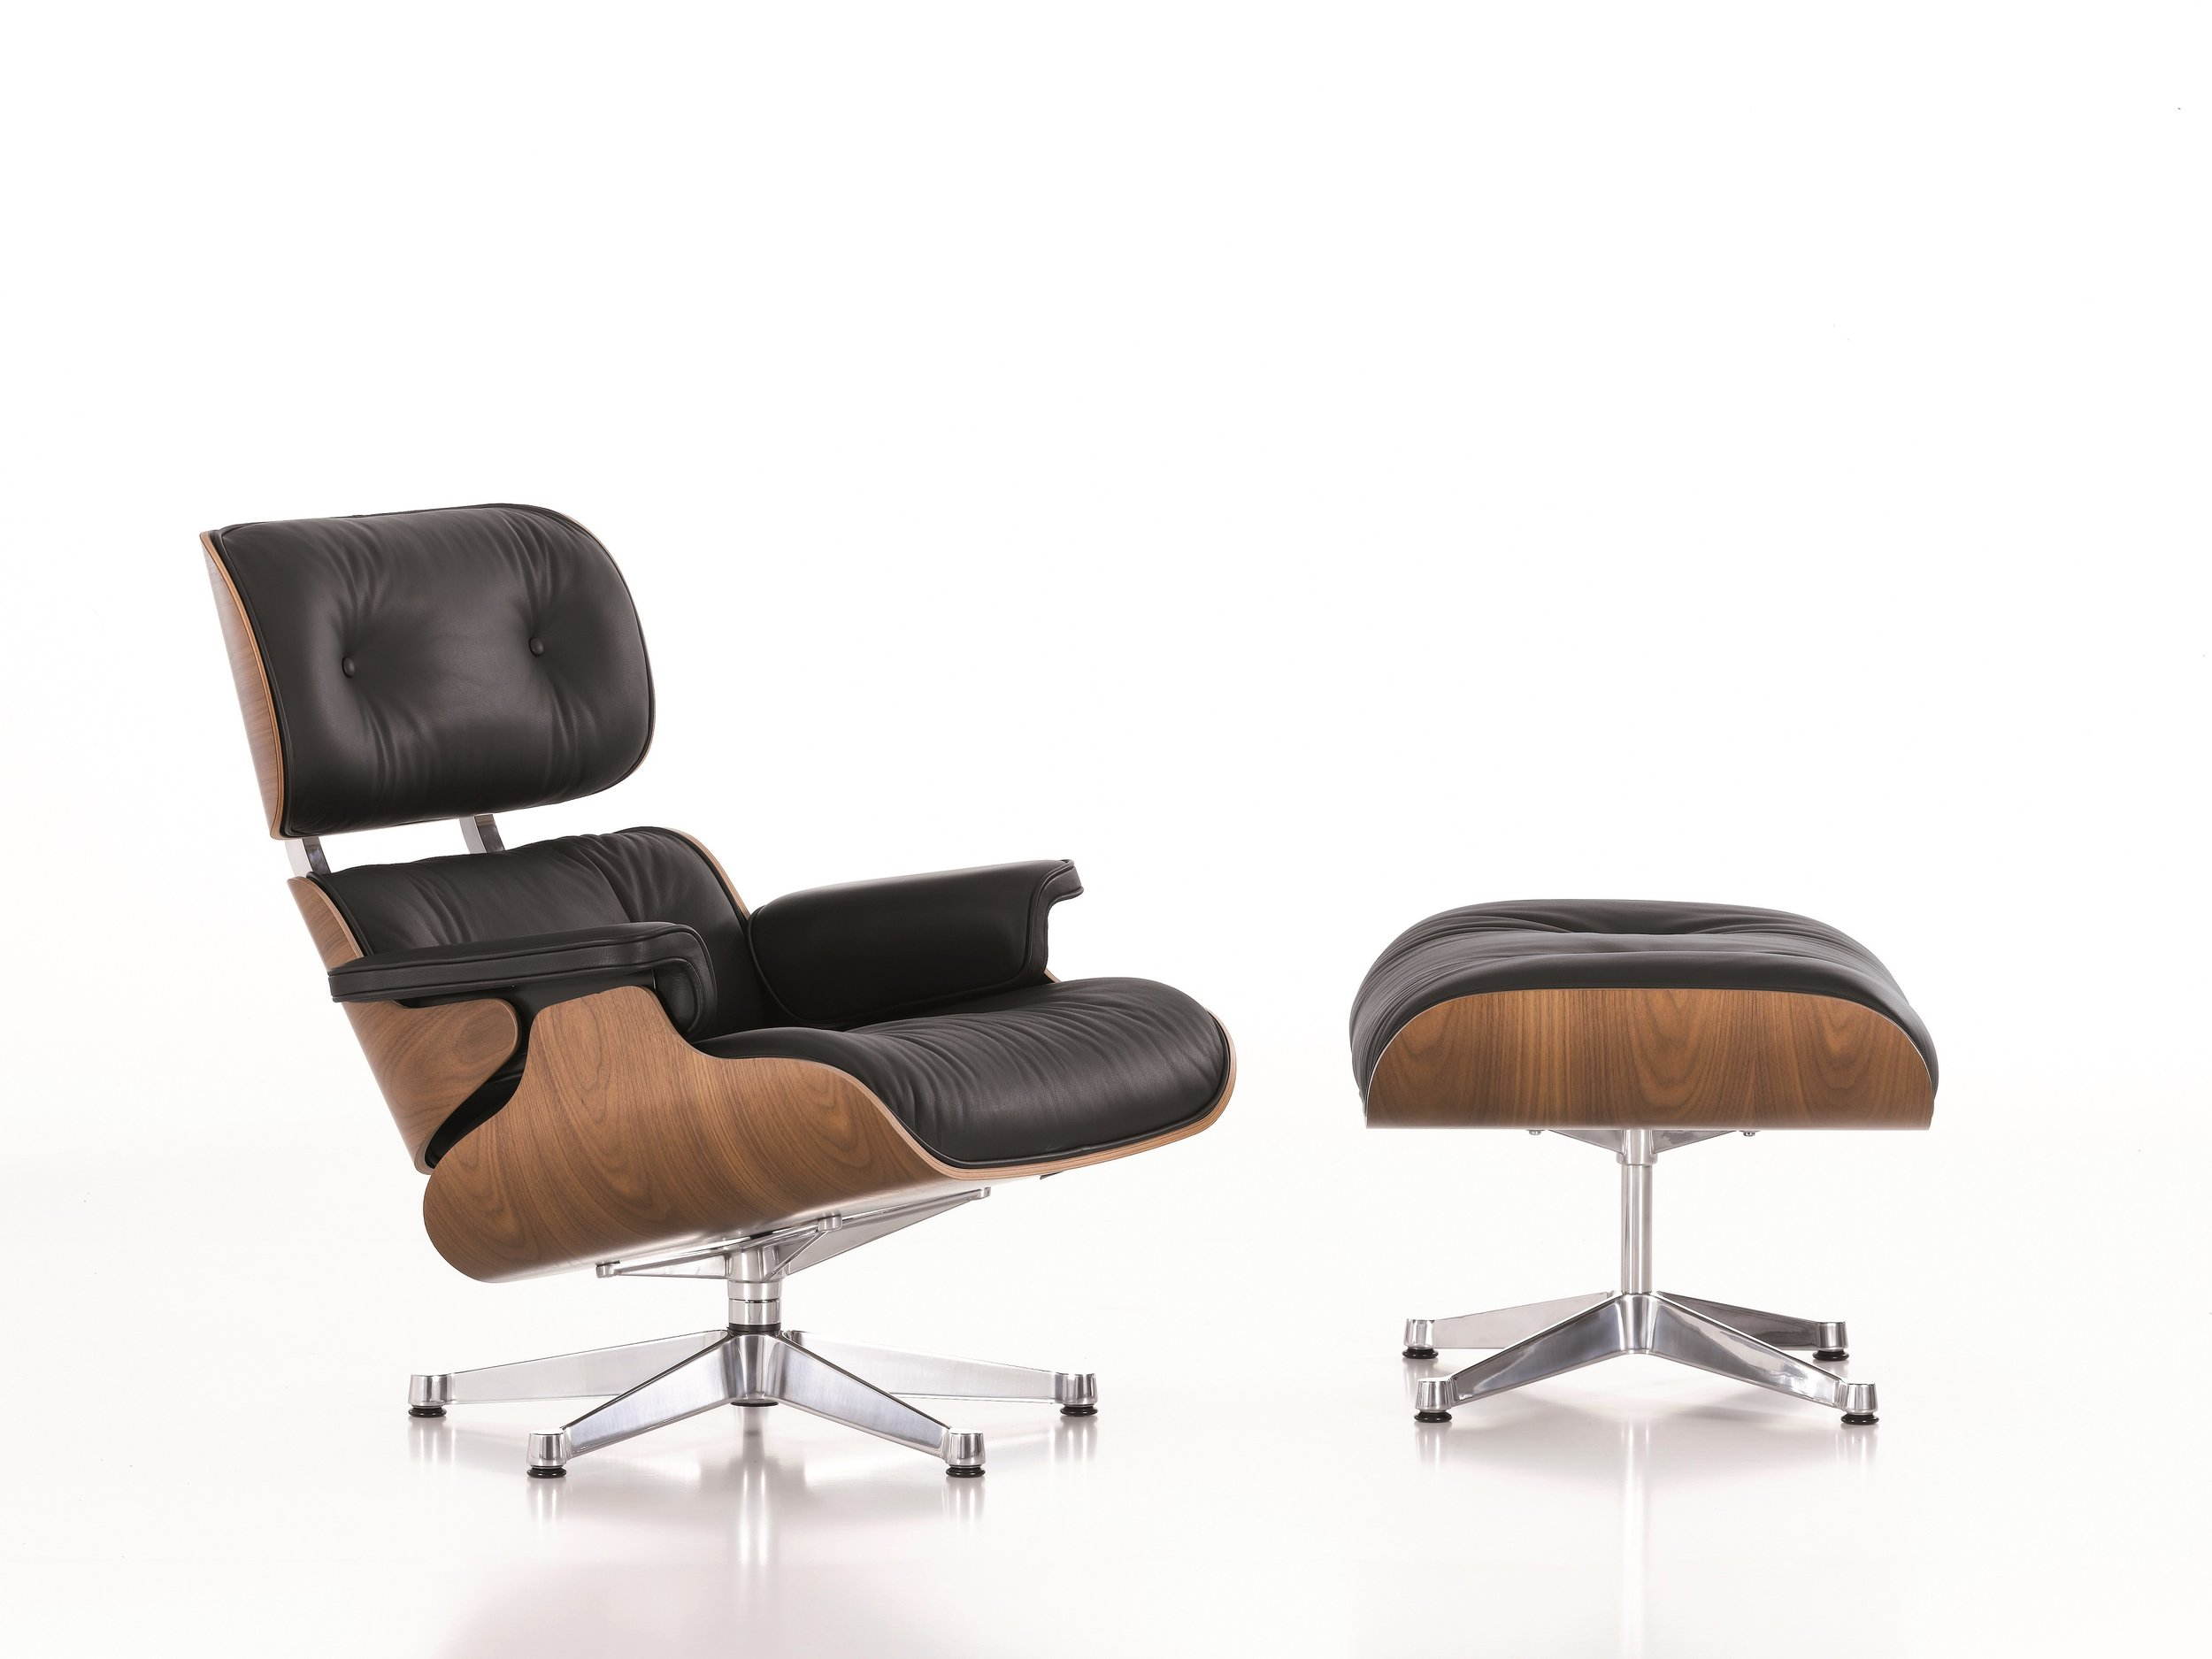 Eames Lounge Chair by Vitra.jpg